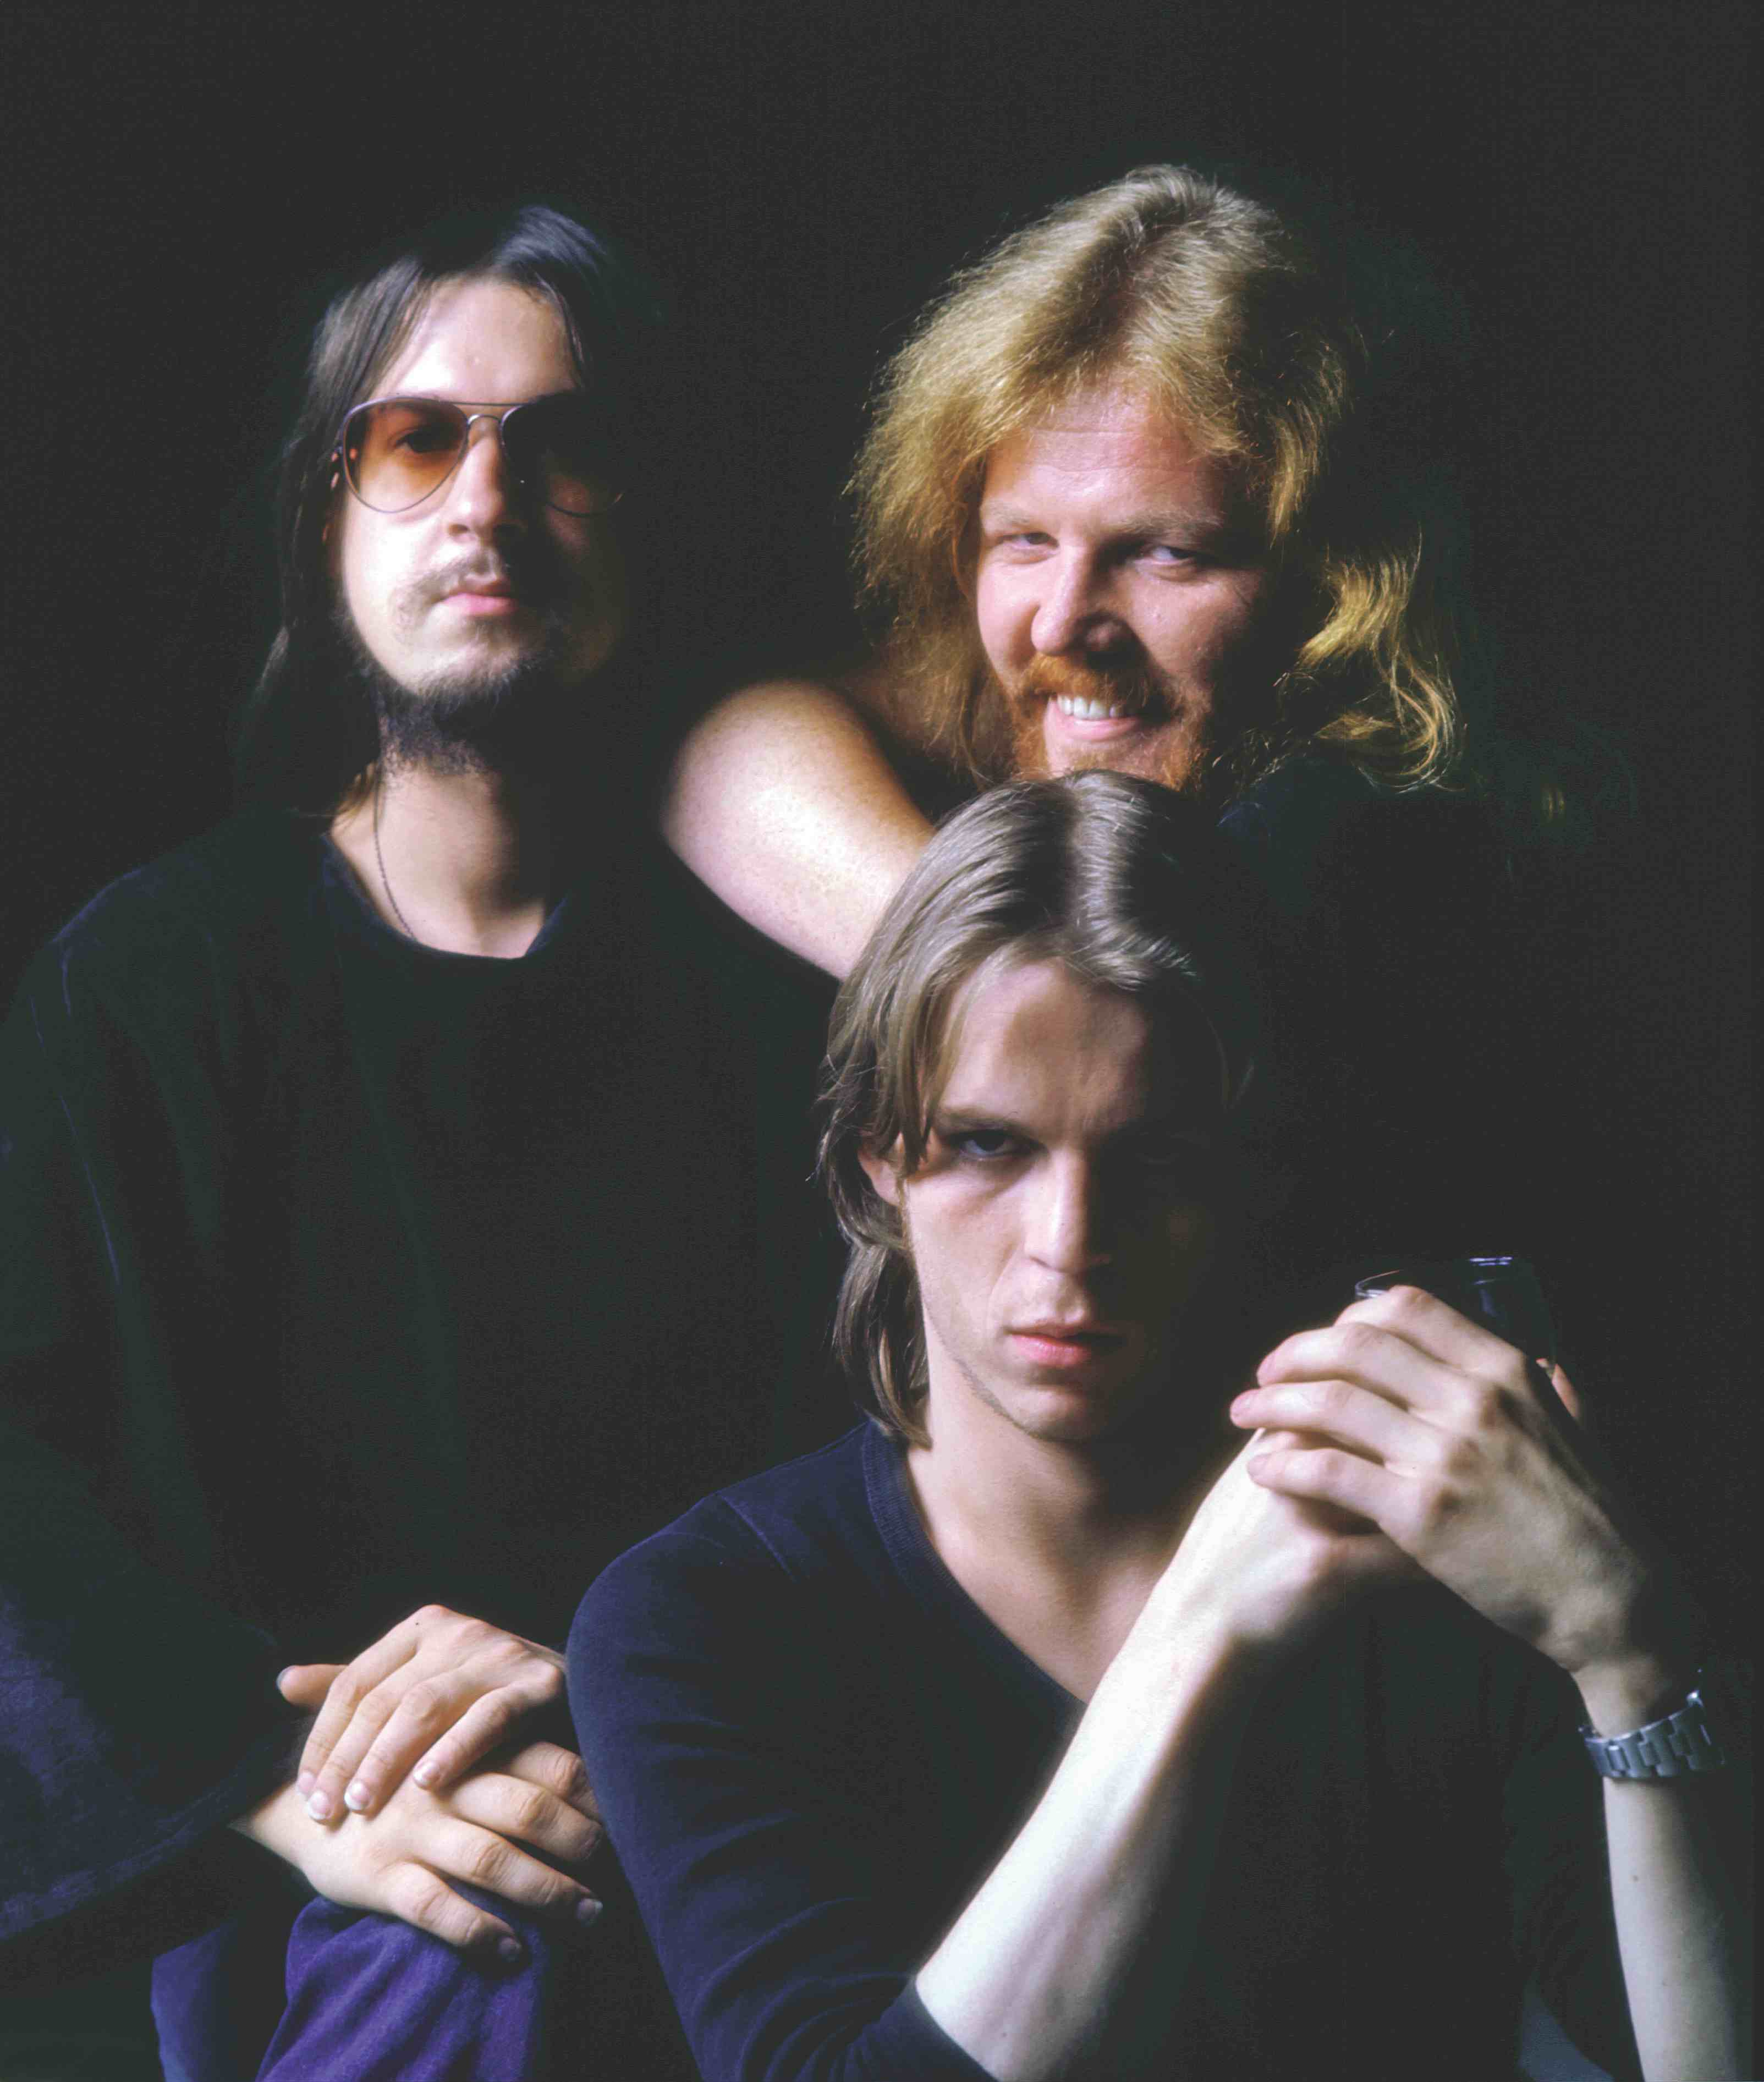 Game Changer: How Tangerine Dream's 'Phaedra' set the template for ambient electronics